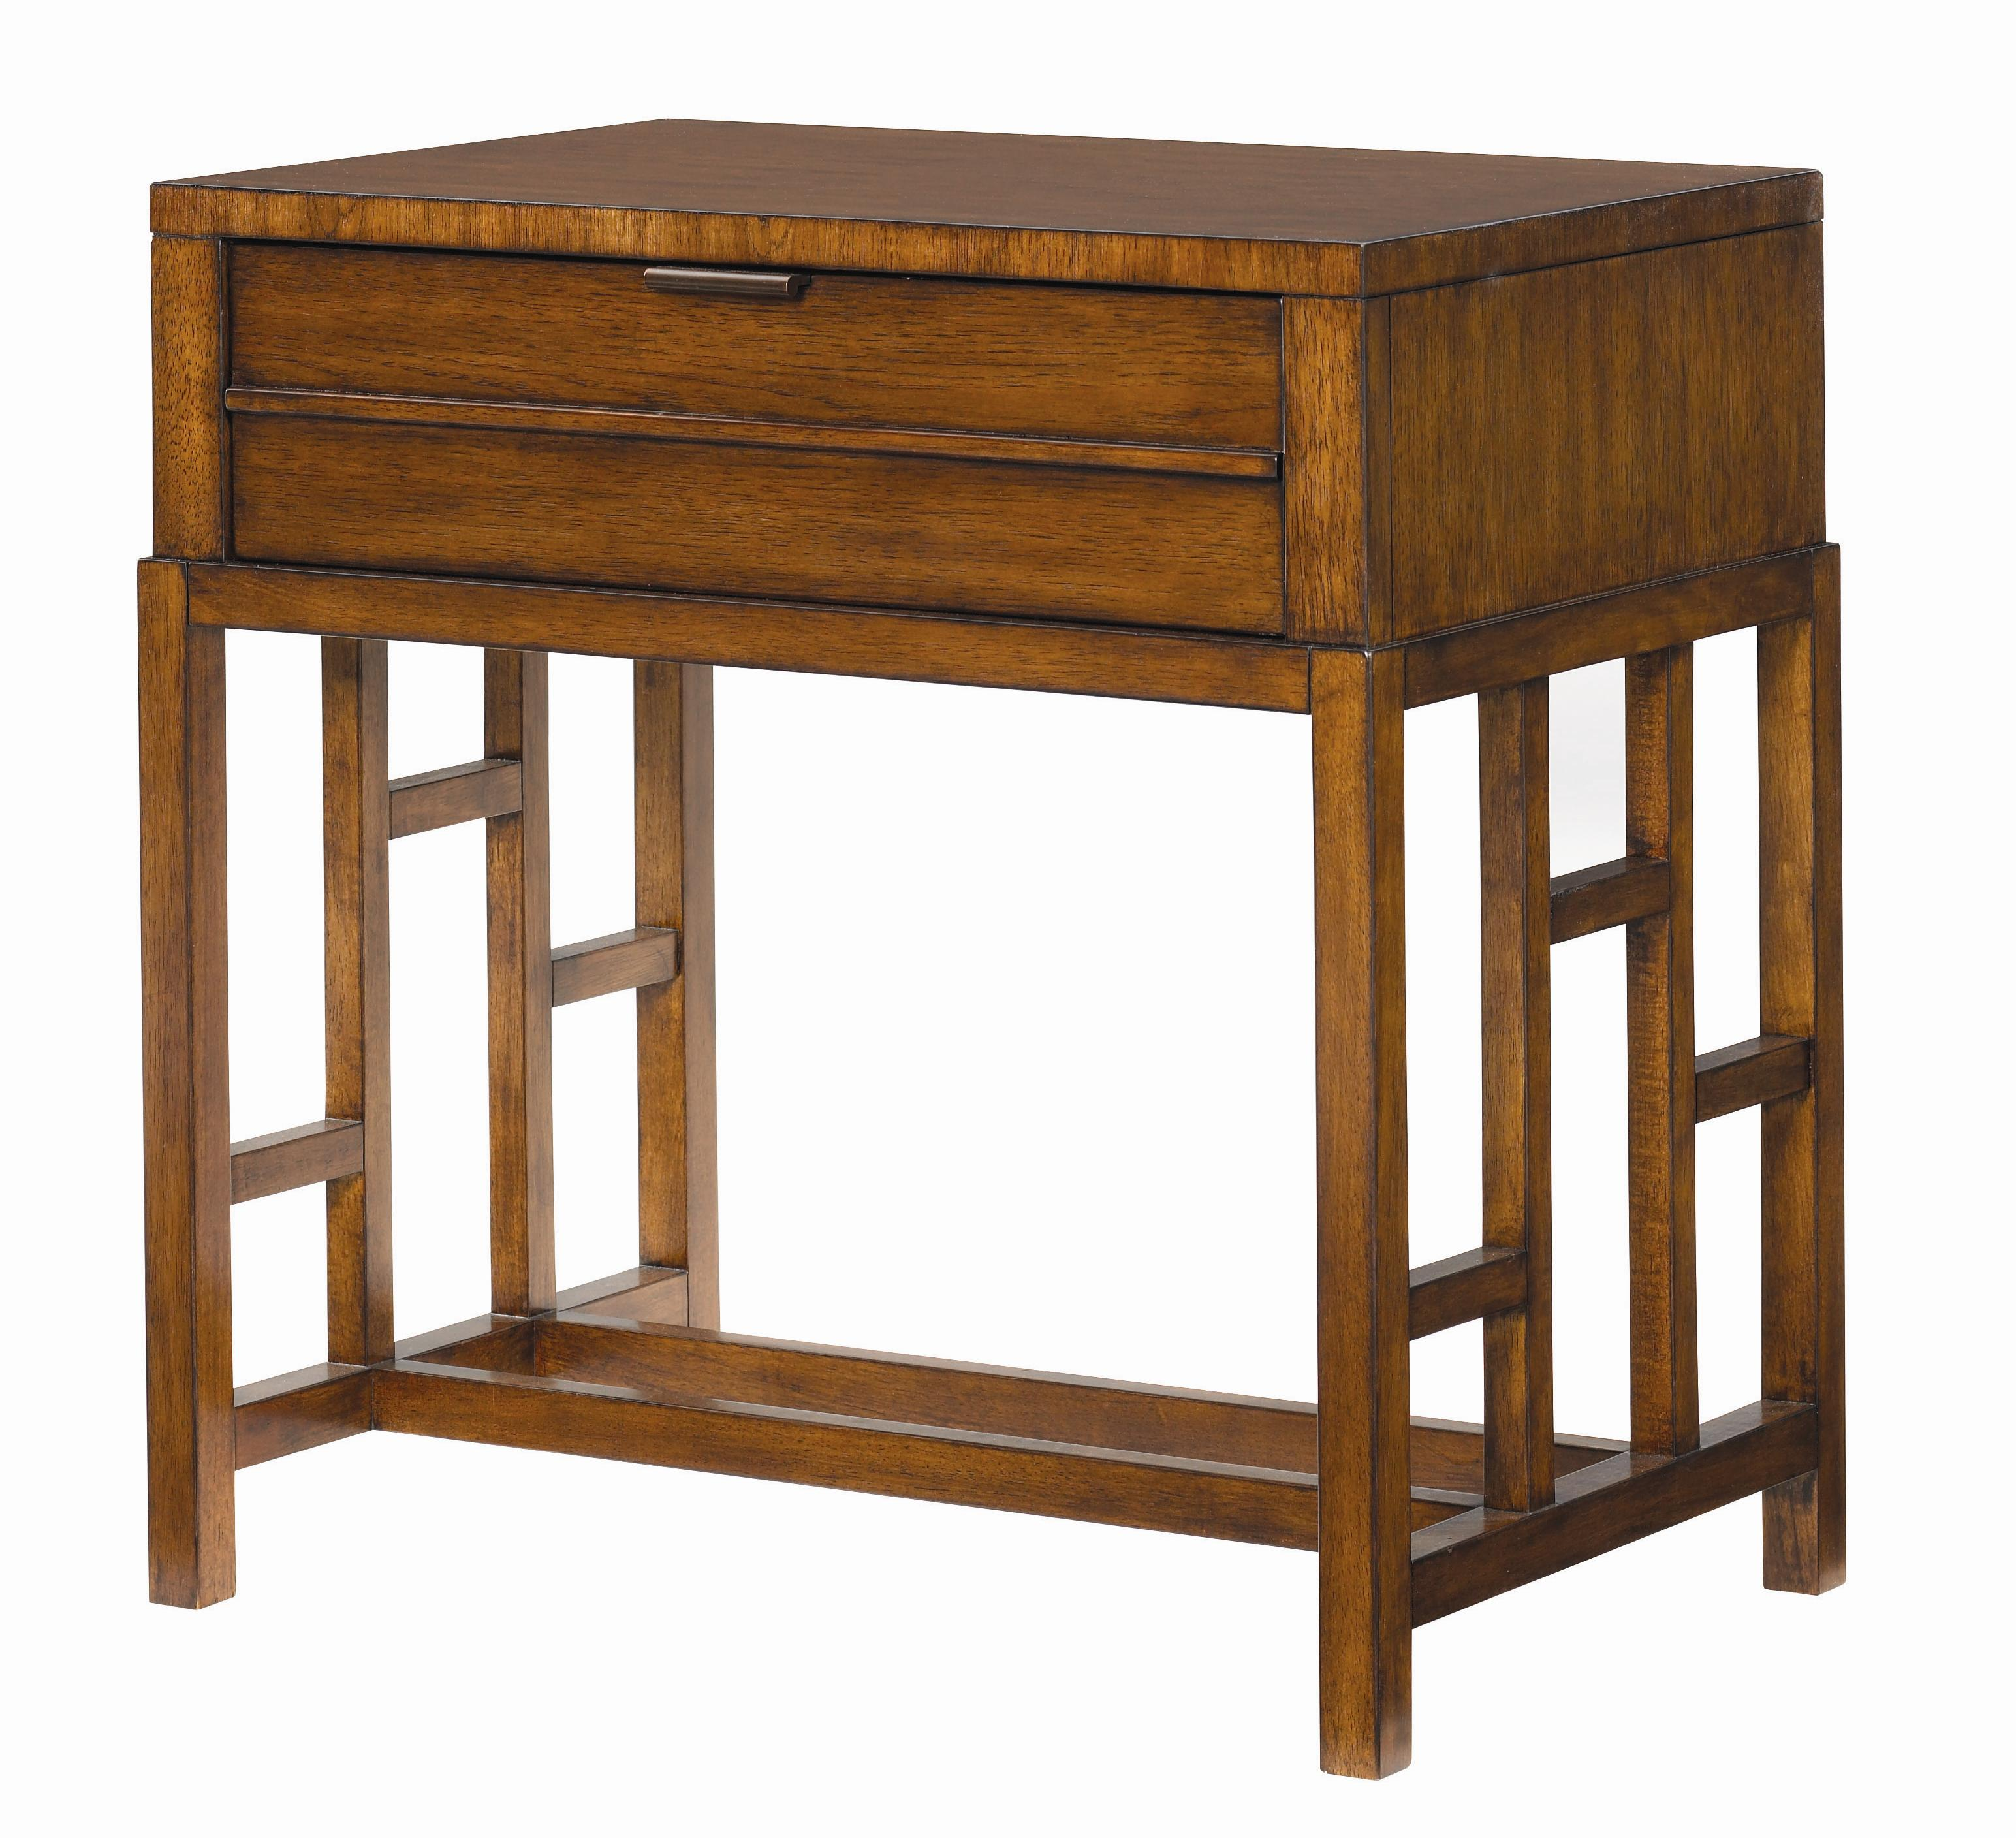 Ocean Club Kaloa Nightstand by Tommy Bahama Home at Baer's Furniture